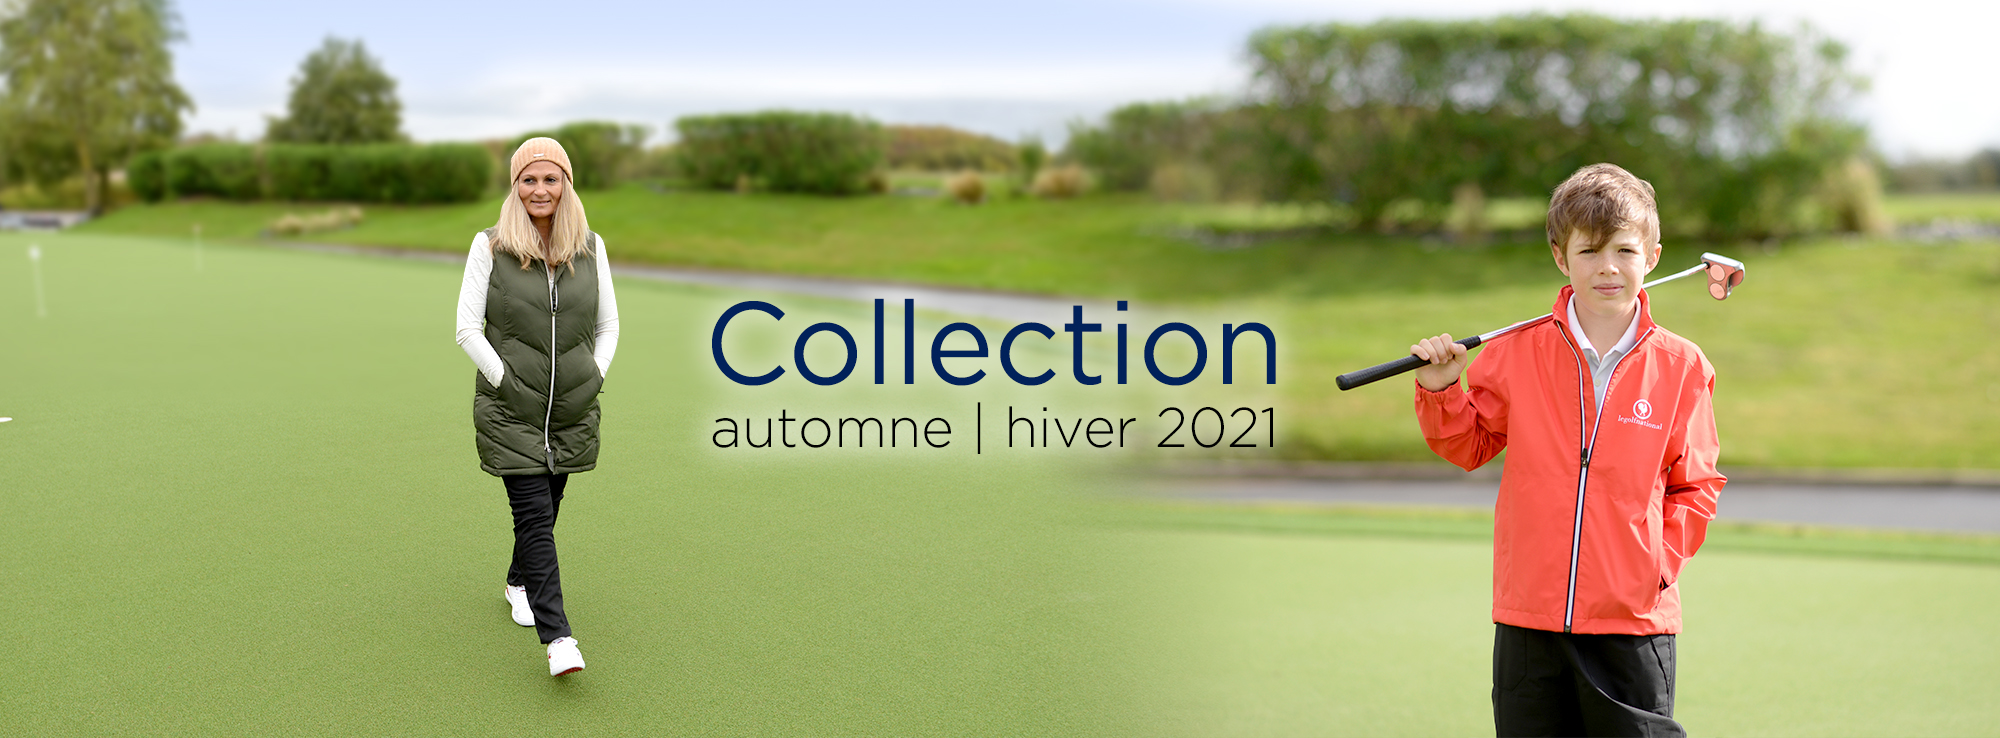 Collection automne hiver 2021